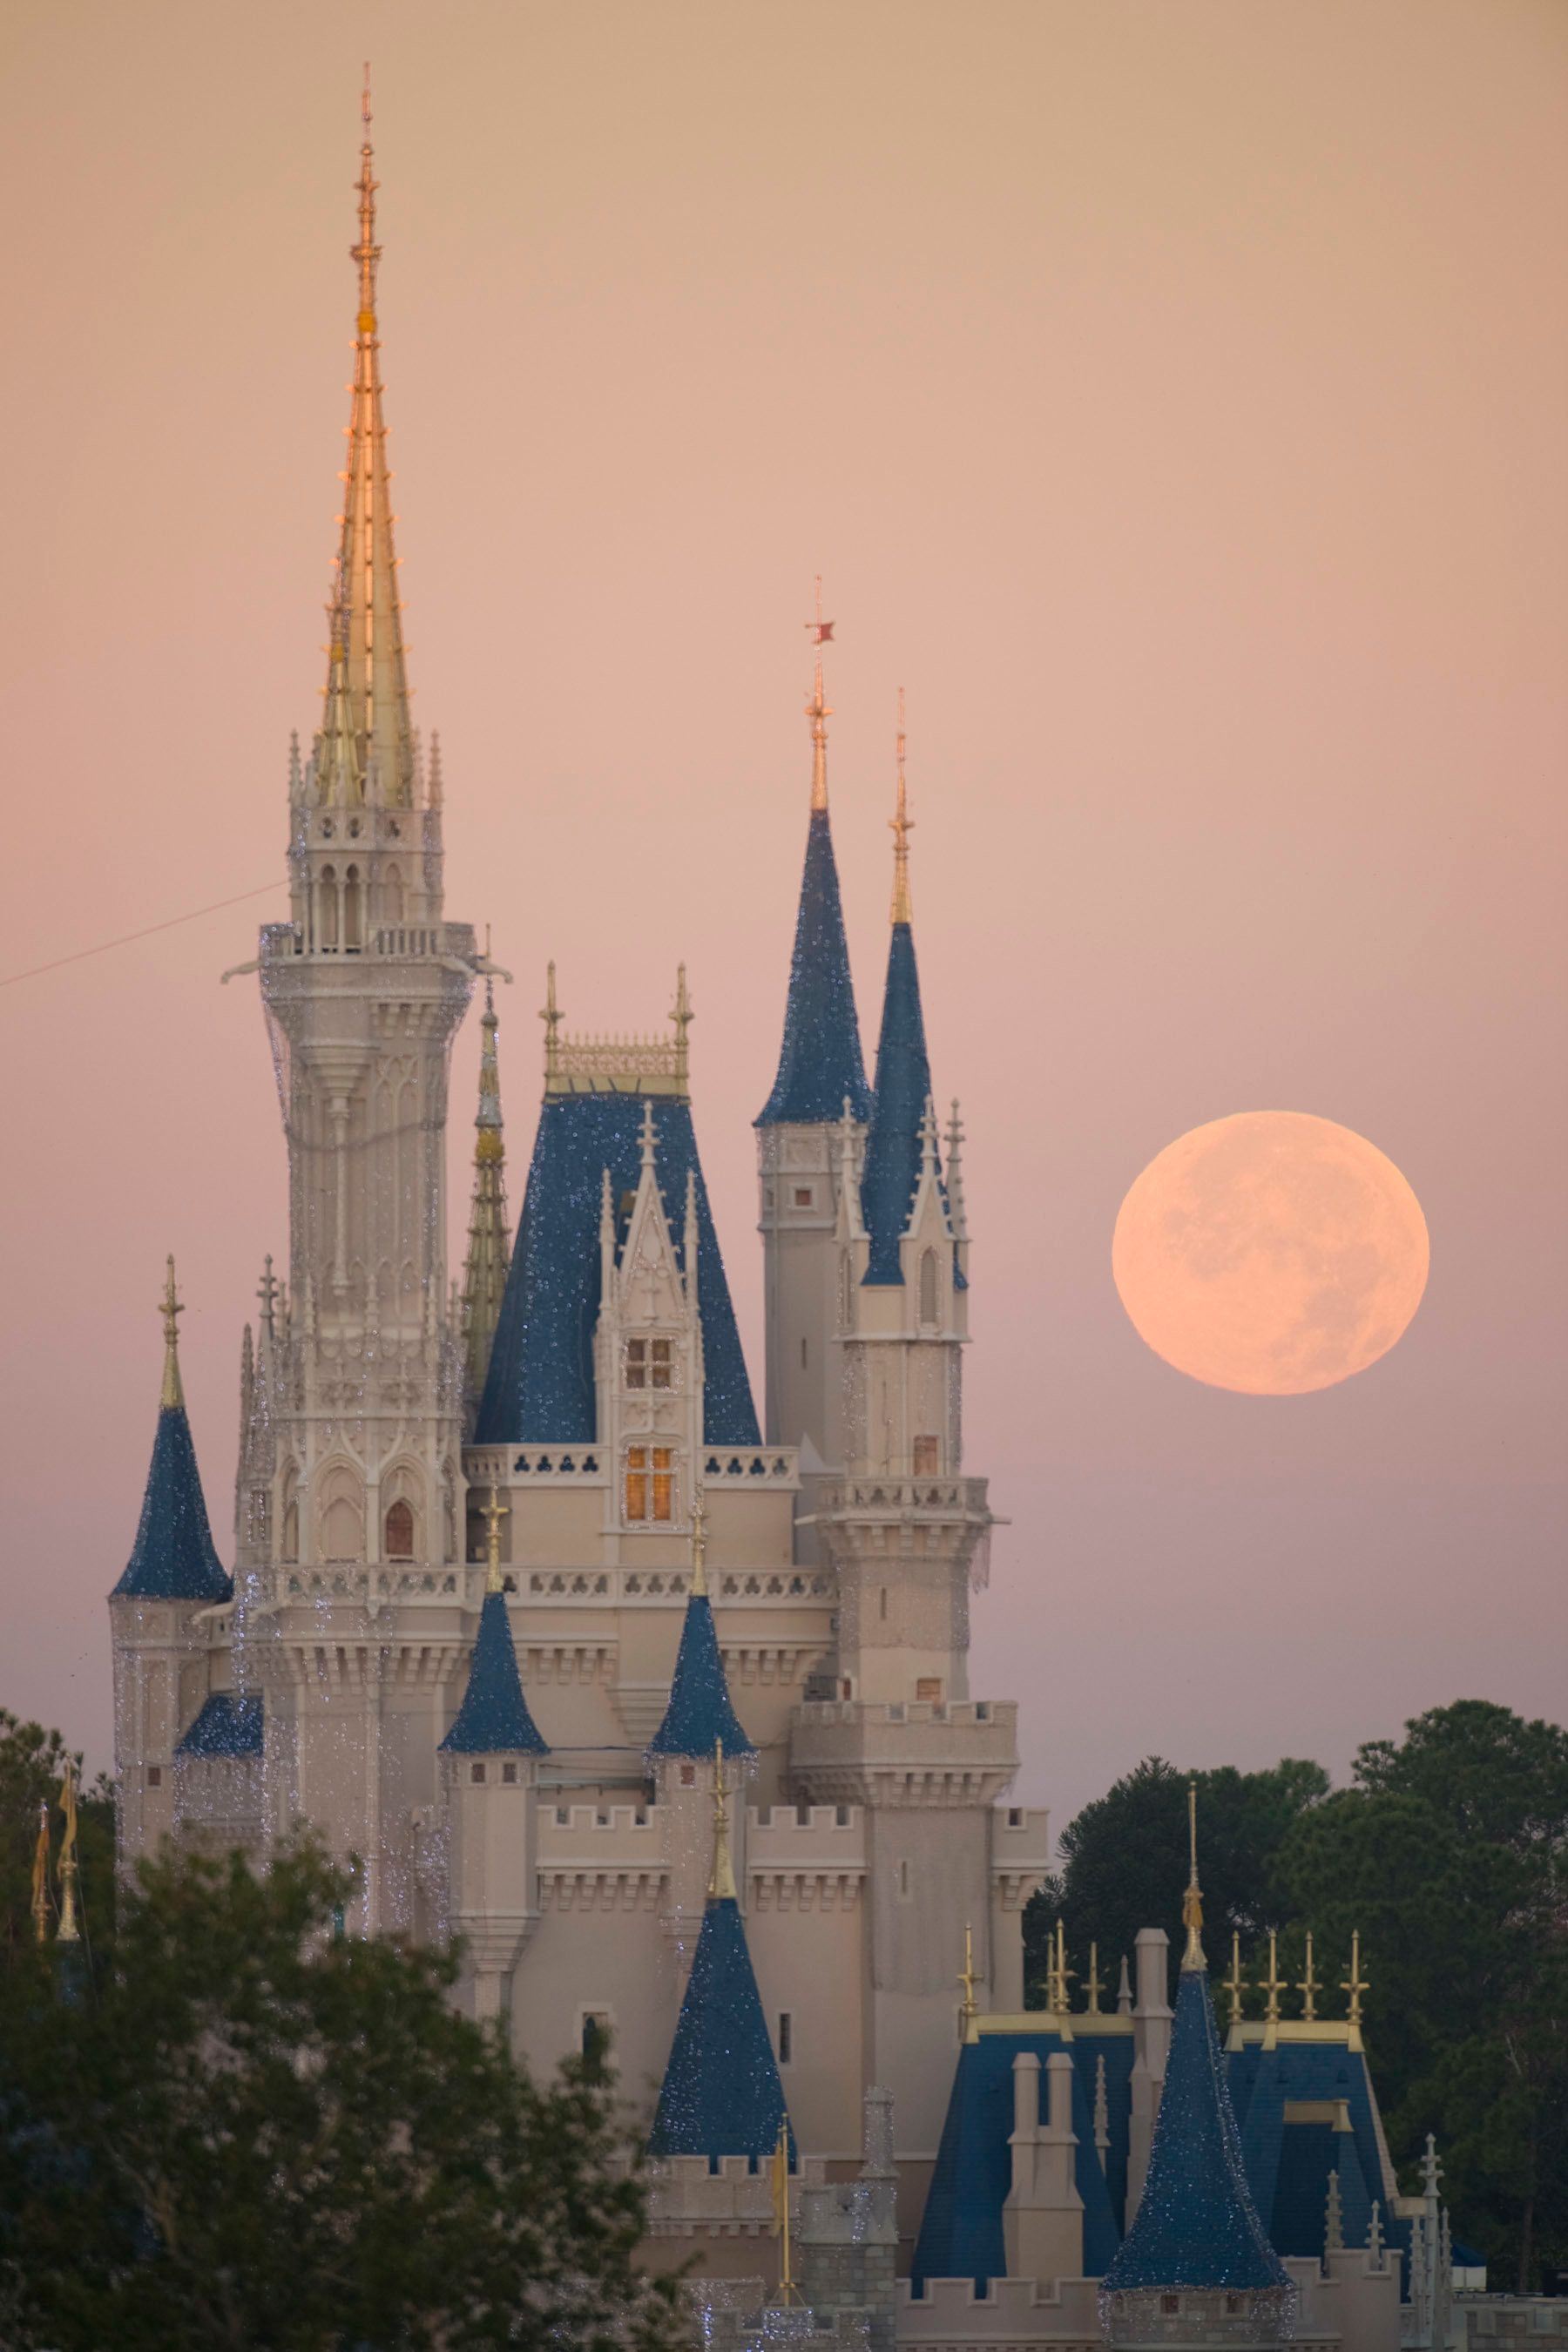 LAKE BUENA VISTA, FL - DECEMBER 21: In this handout photo provided by Disney, a full moon is seen over Cinderella Castle at Disney World on December 21, 2010 in Lake Buena Vista, Florida. (Photo by David Roark/Disney via Getty Images)